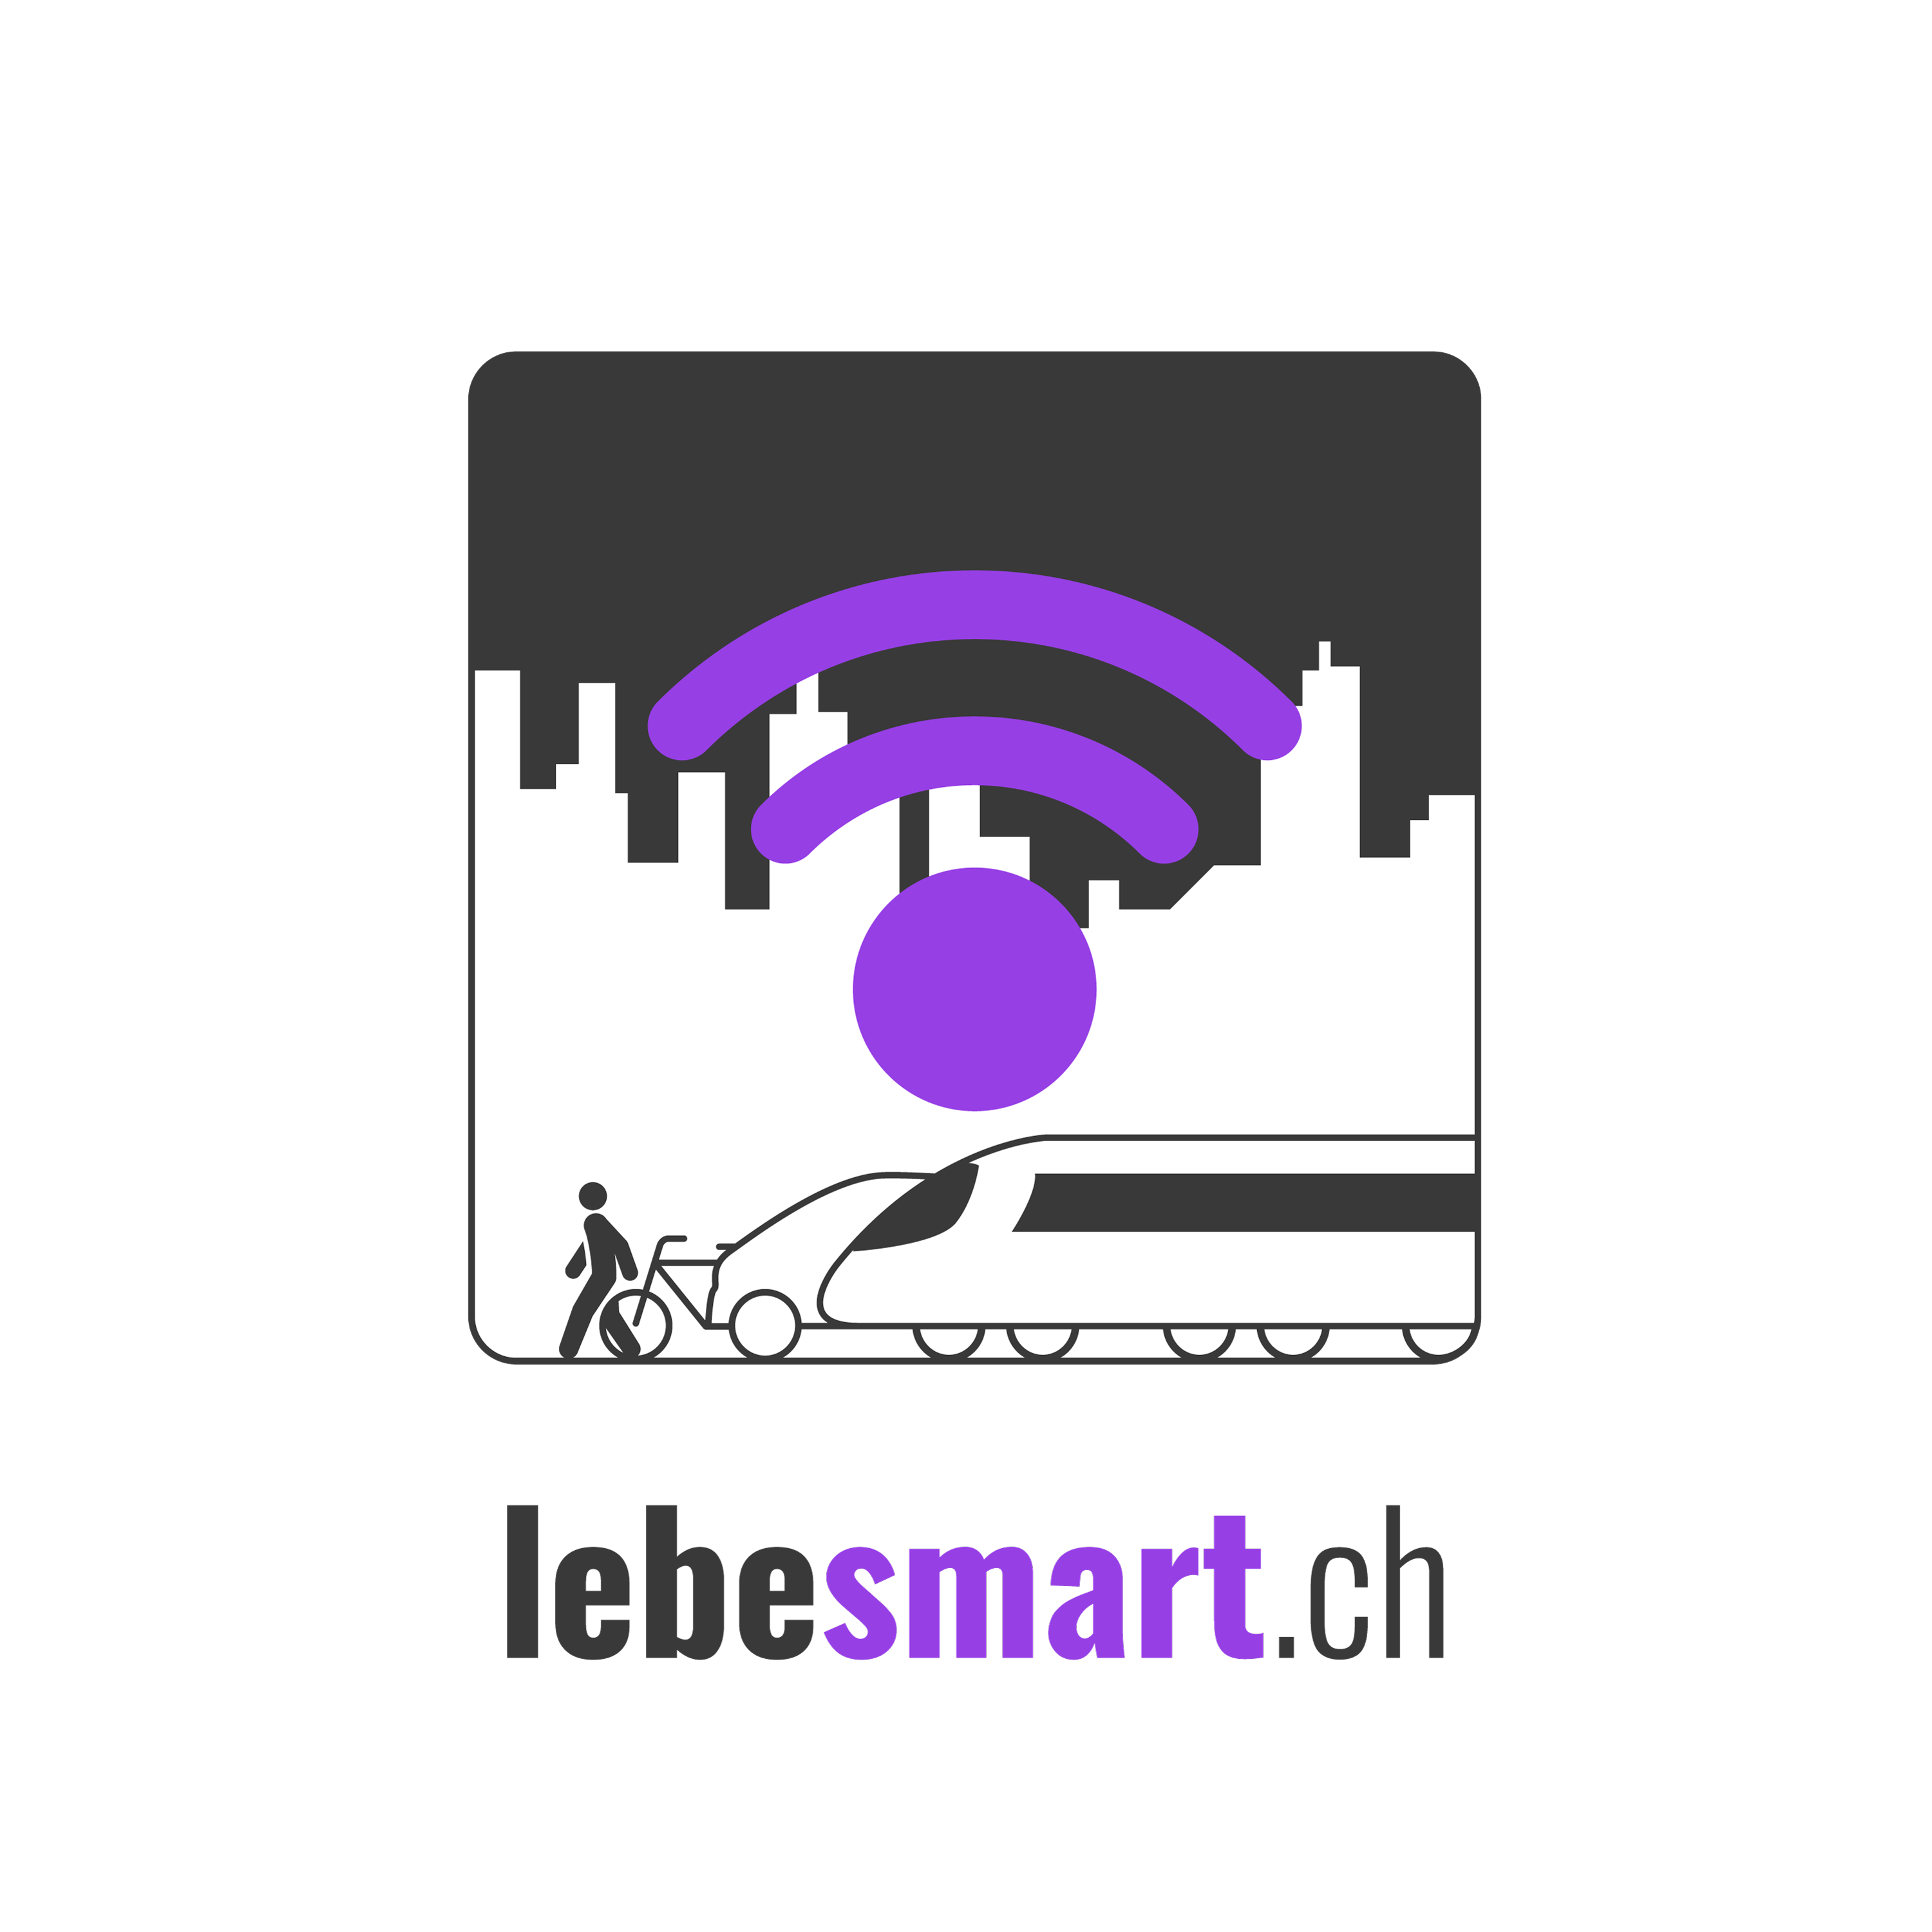 lebesmart.ch Podcast